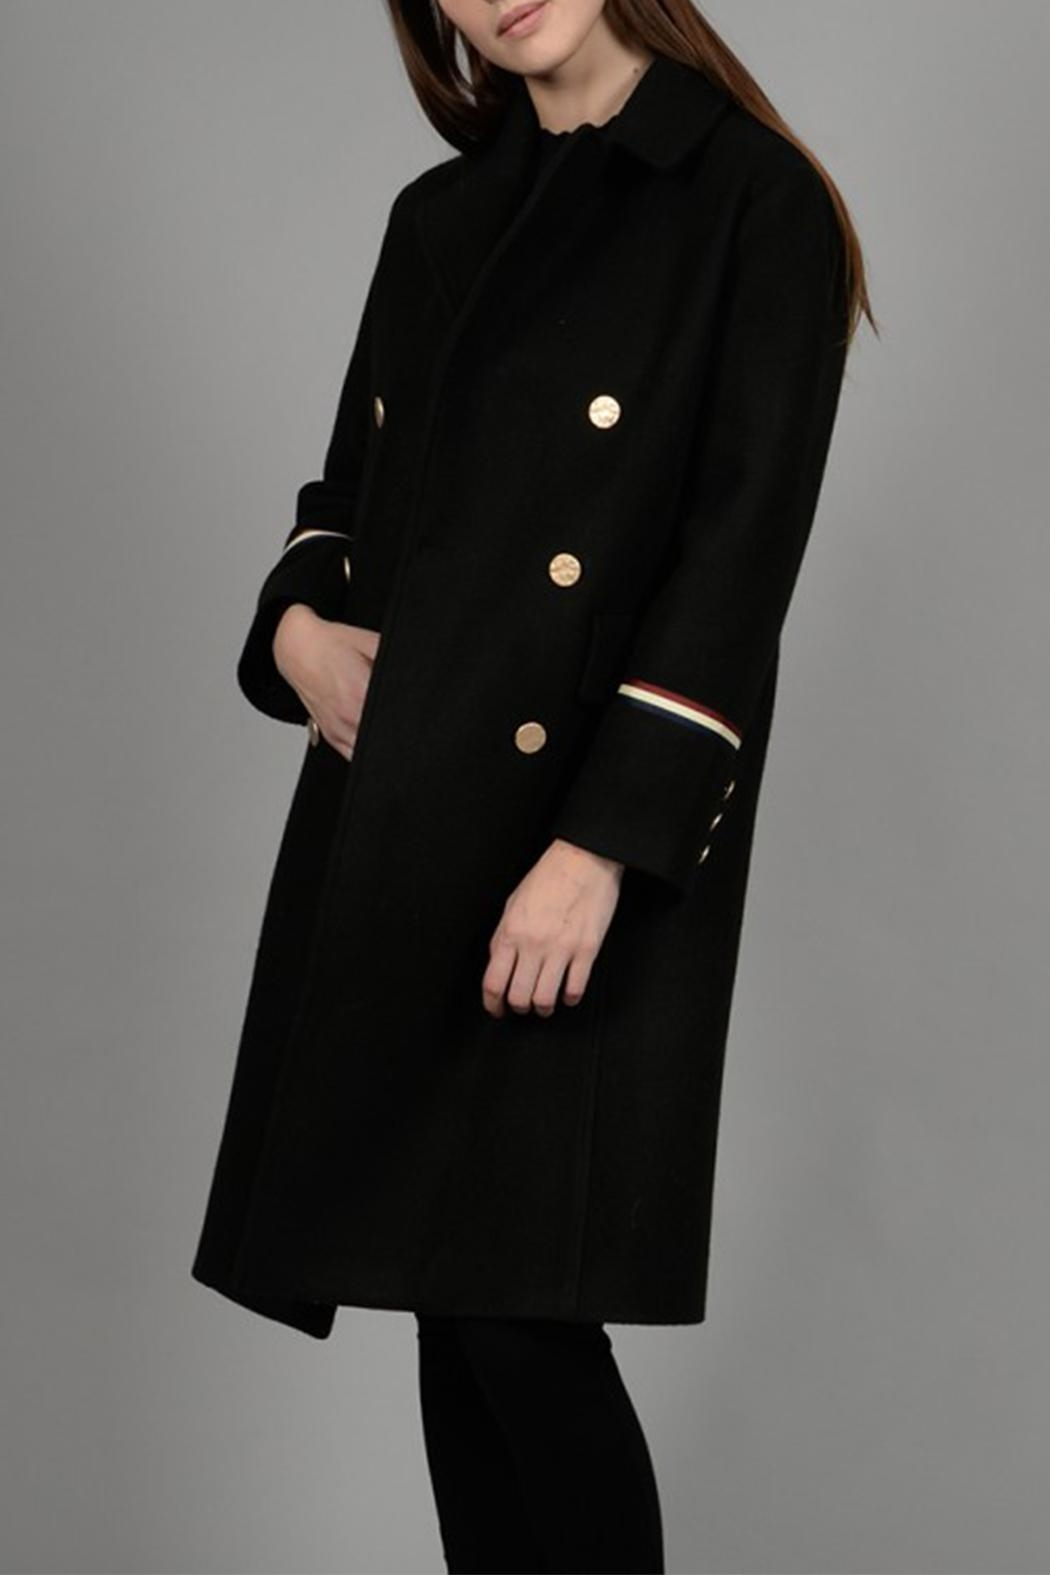 Molly Bracken Gucci Inspired Coat - Side Cropped Image